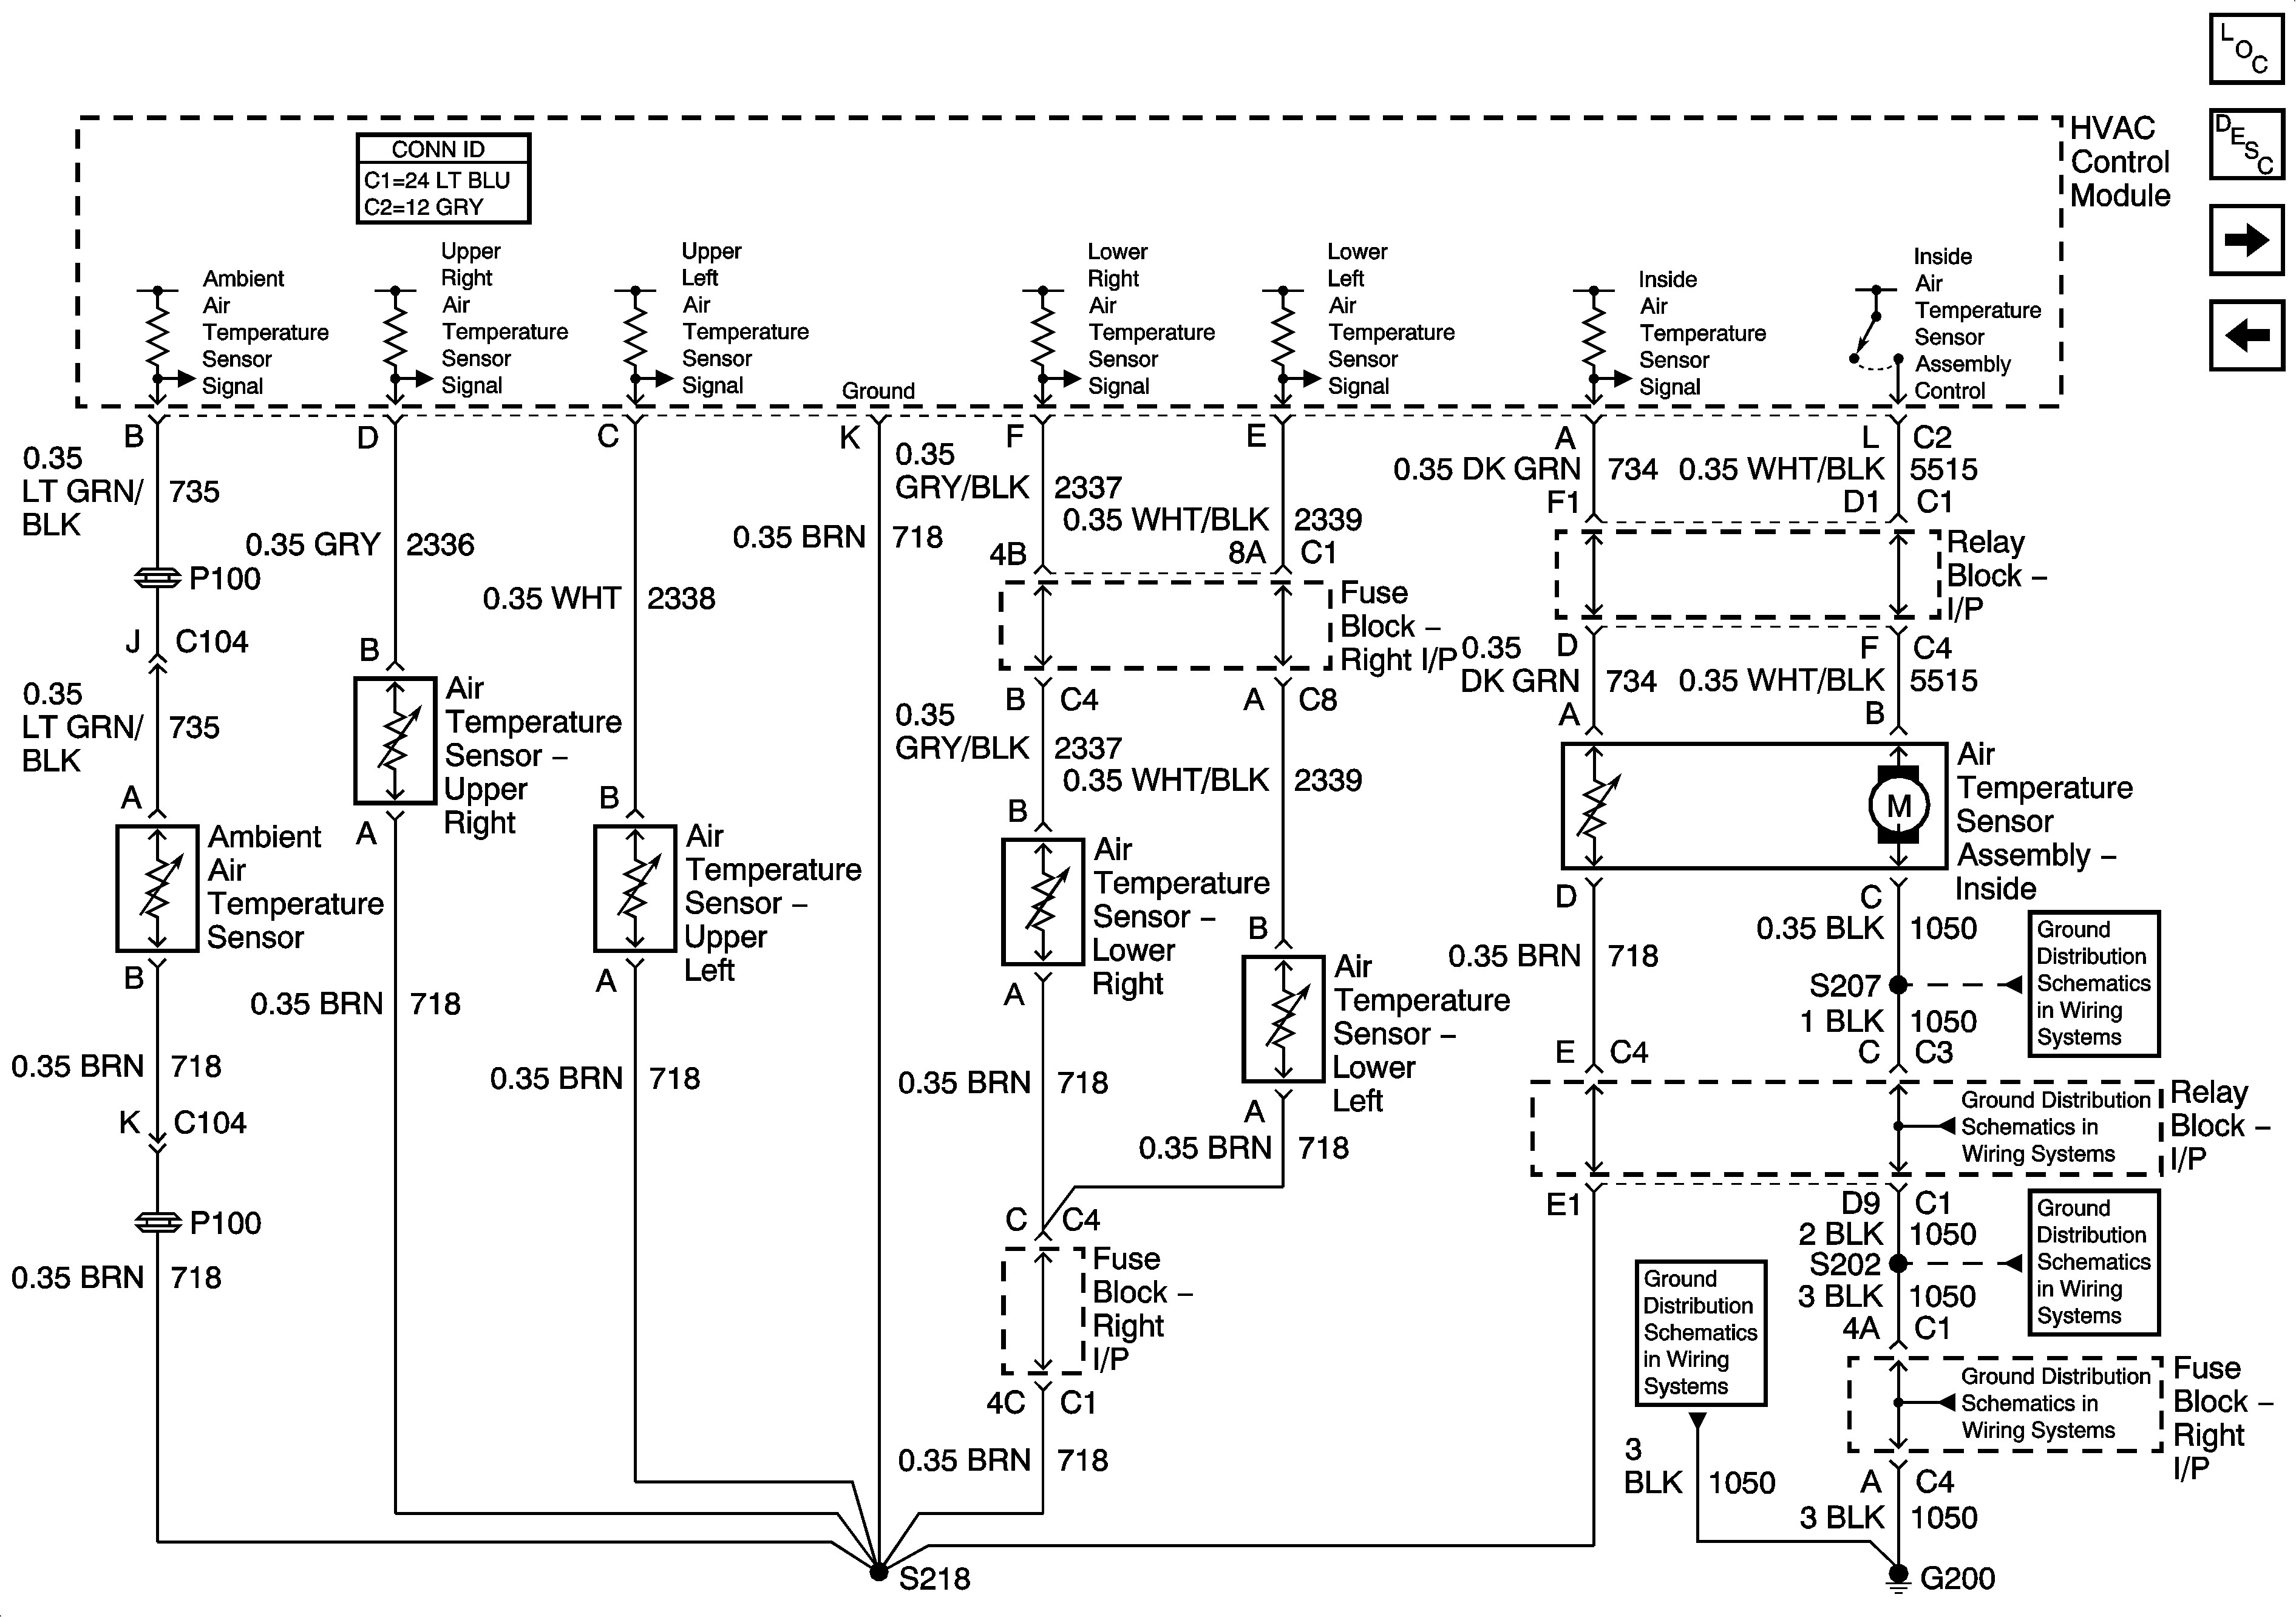 2004 Chevy Trailblazer Stereo Wiring Diagram from static-cdn.imageservice.cloud